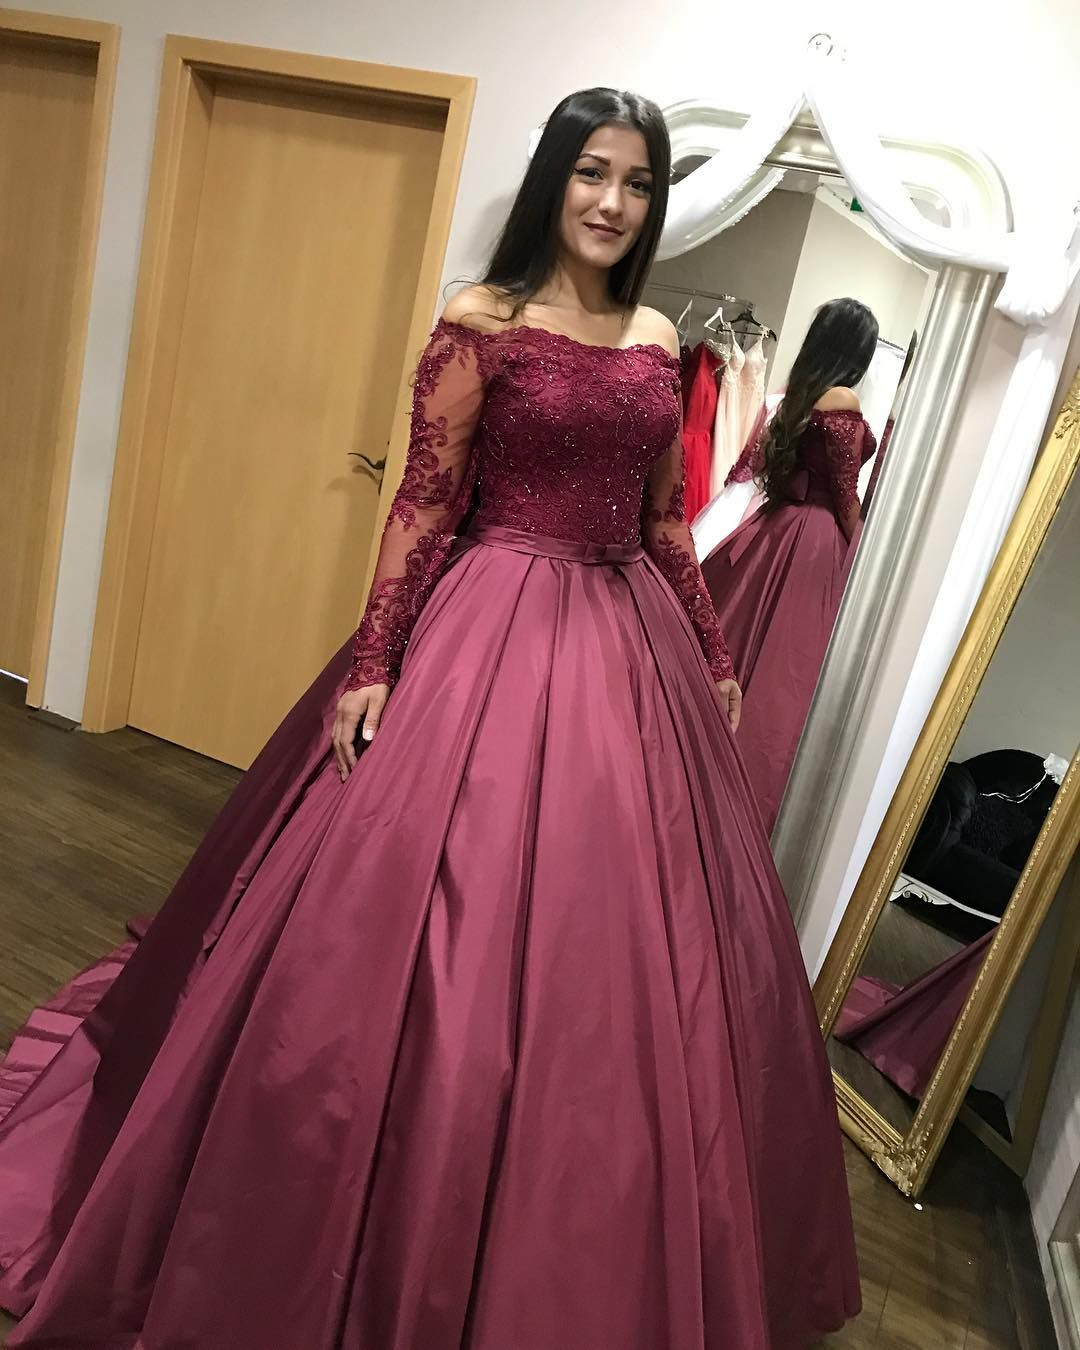 76d329f3eed Hot Pink Ball Gown Quinceanera Dresses 2018 Off the Shoulder Long Sleeve  Party Dress with Bow Satin Evening Dress Gowns Long vestido de festa